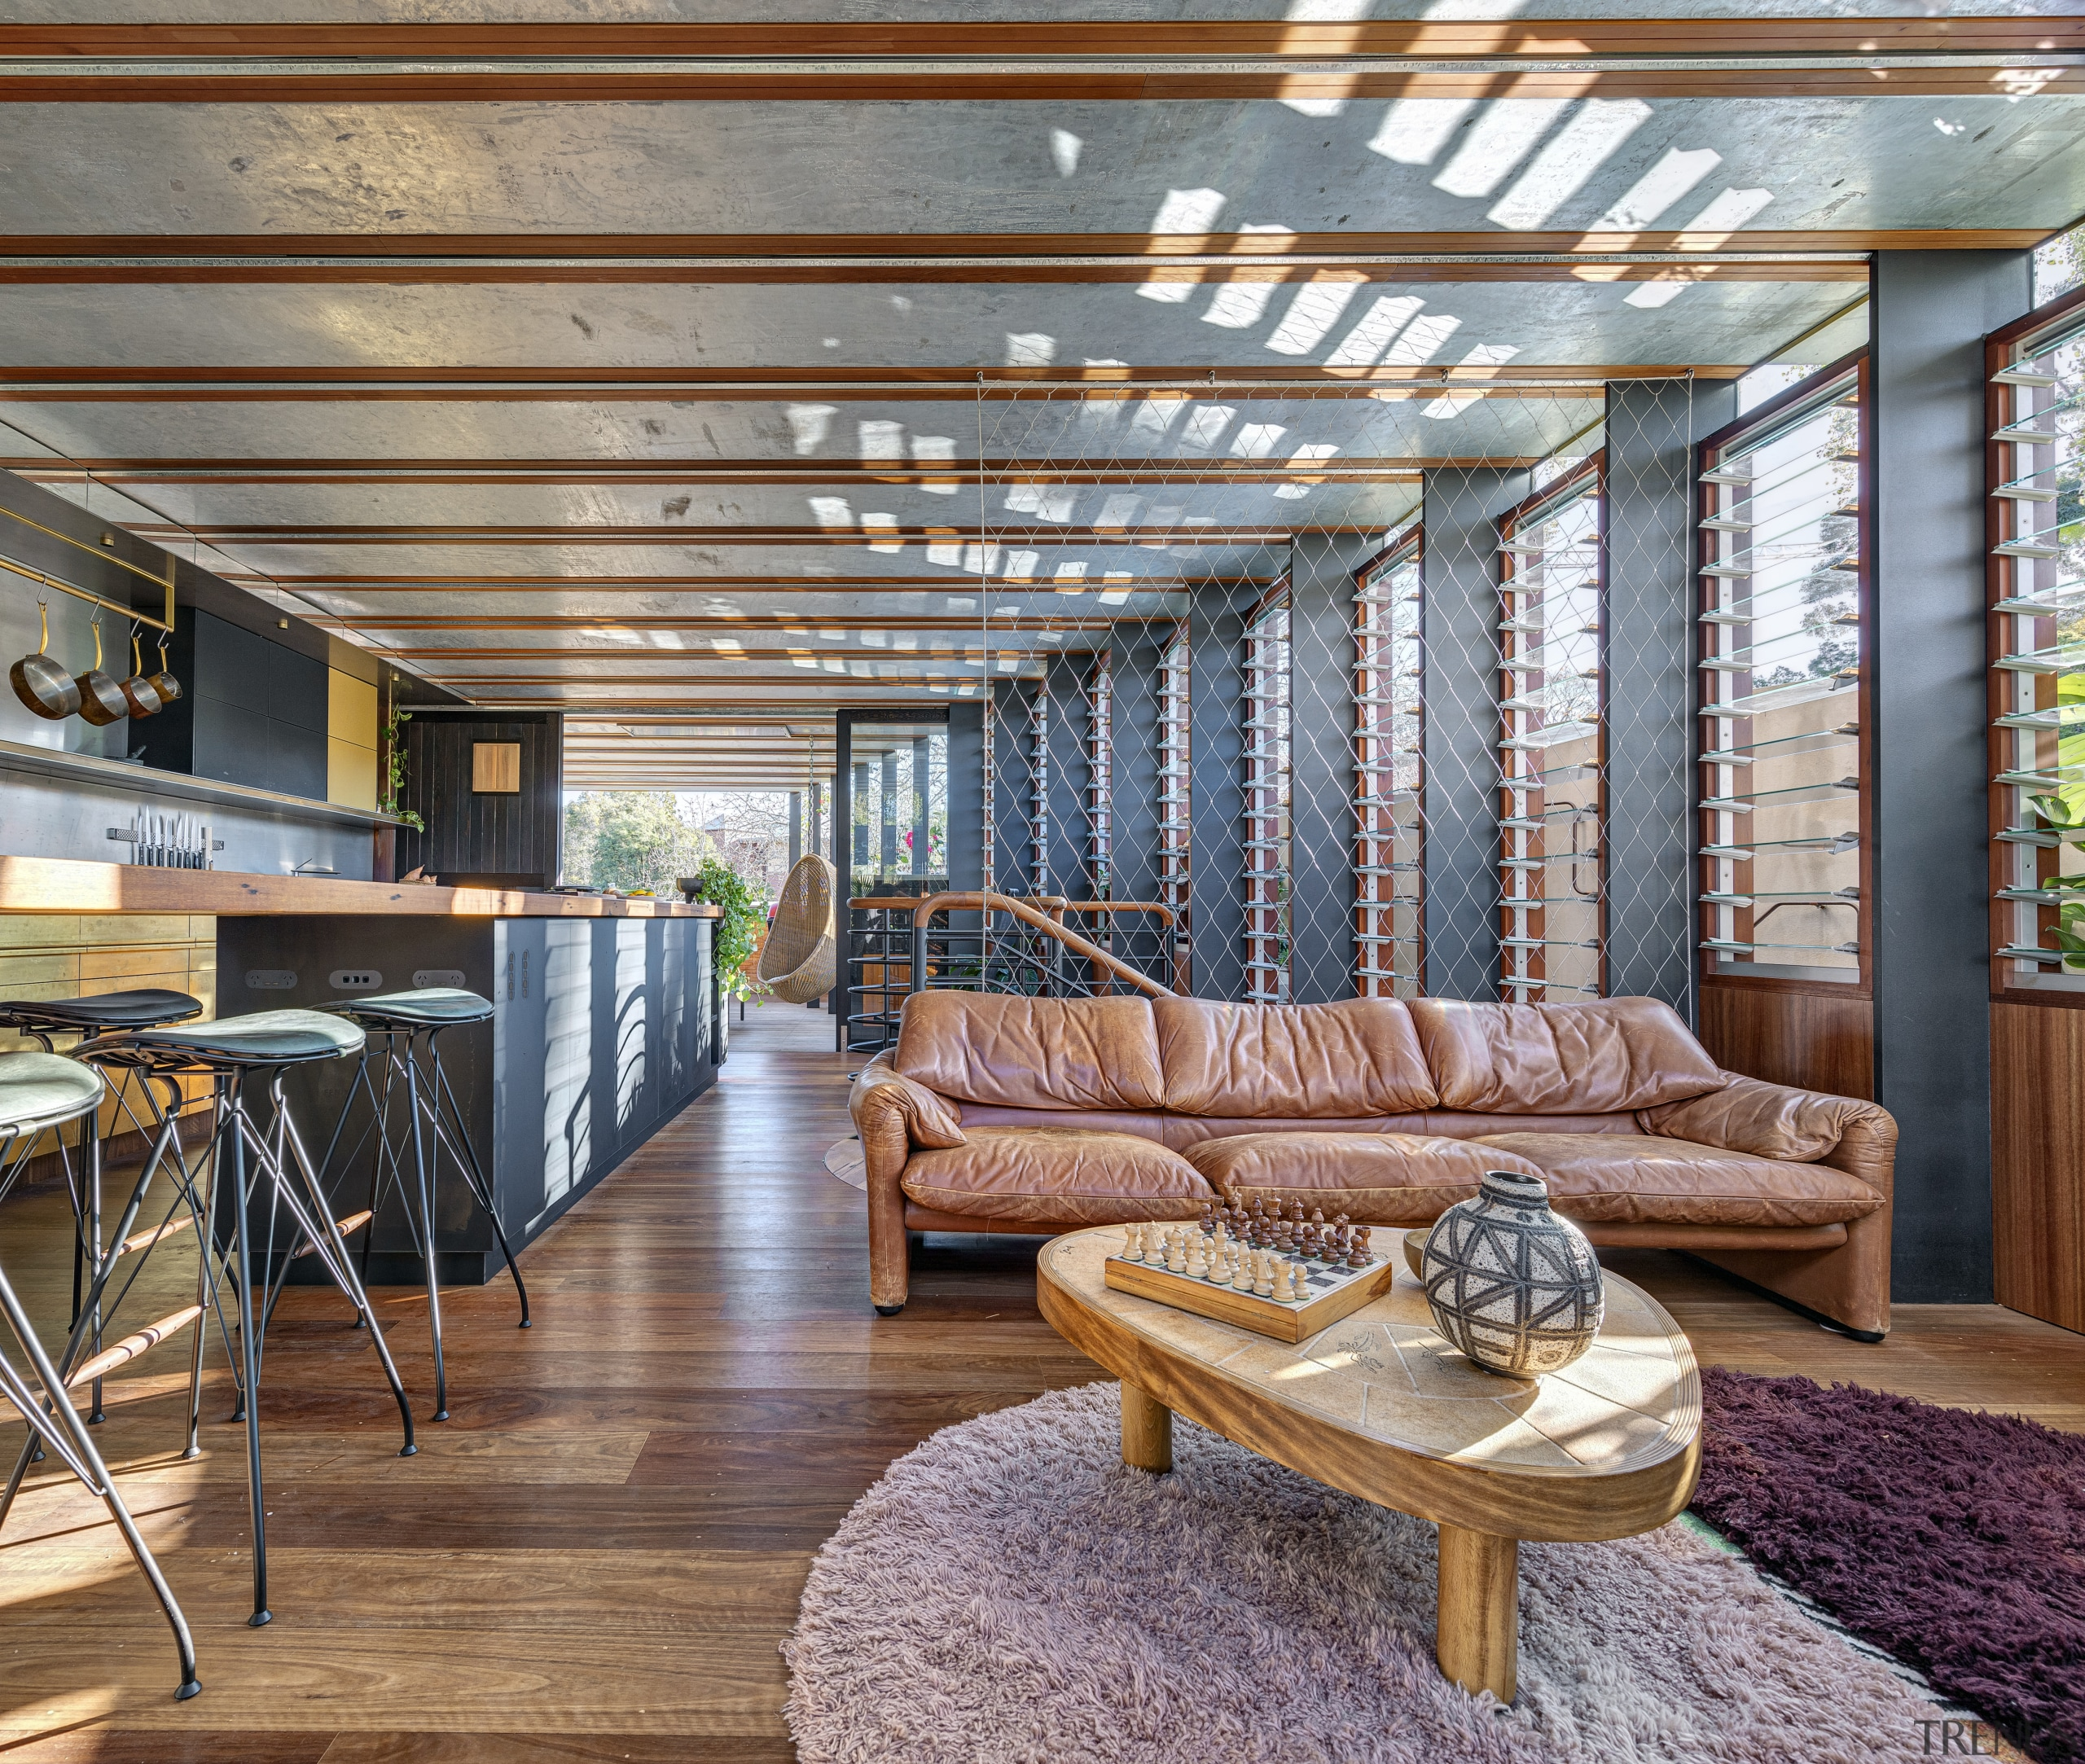 All this family home's day-to-day living spaces – gray, brown